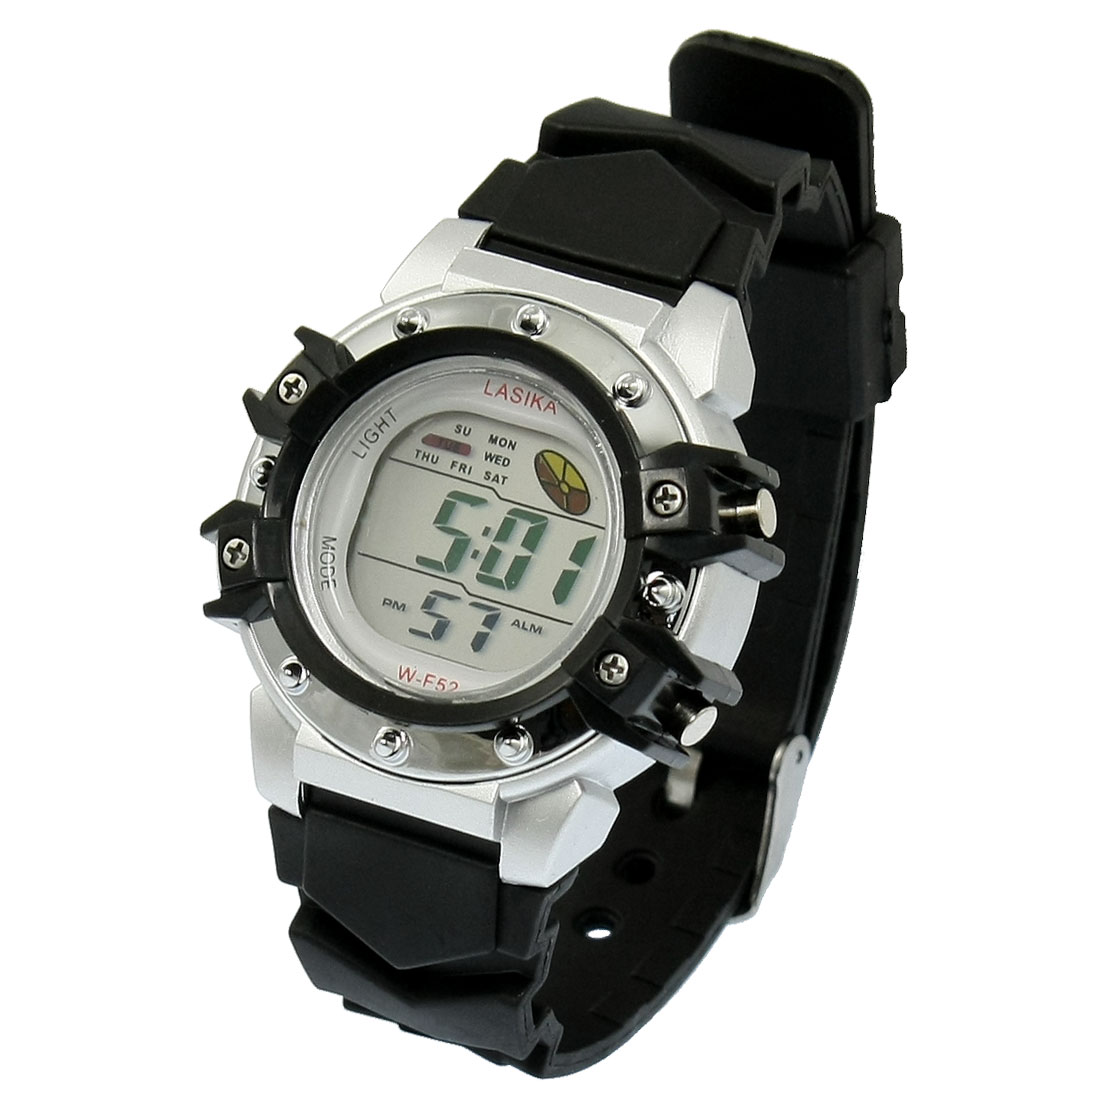 Adjustable Wristband Round Dial Alarm Stopwatch Wrist Watch Black